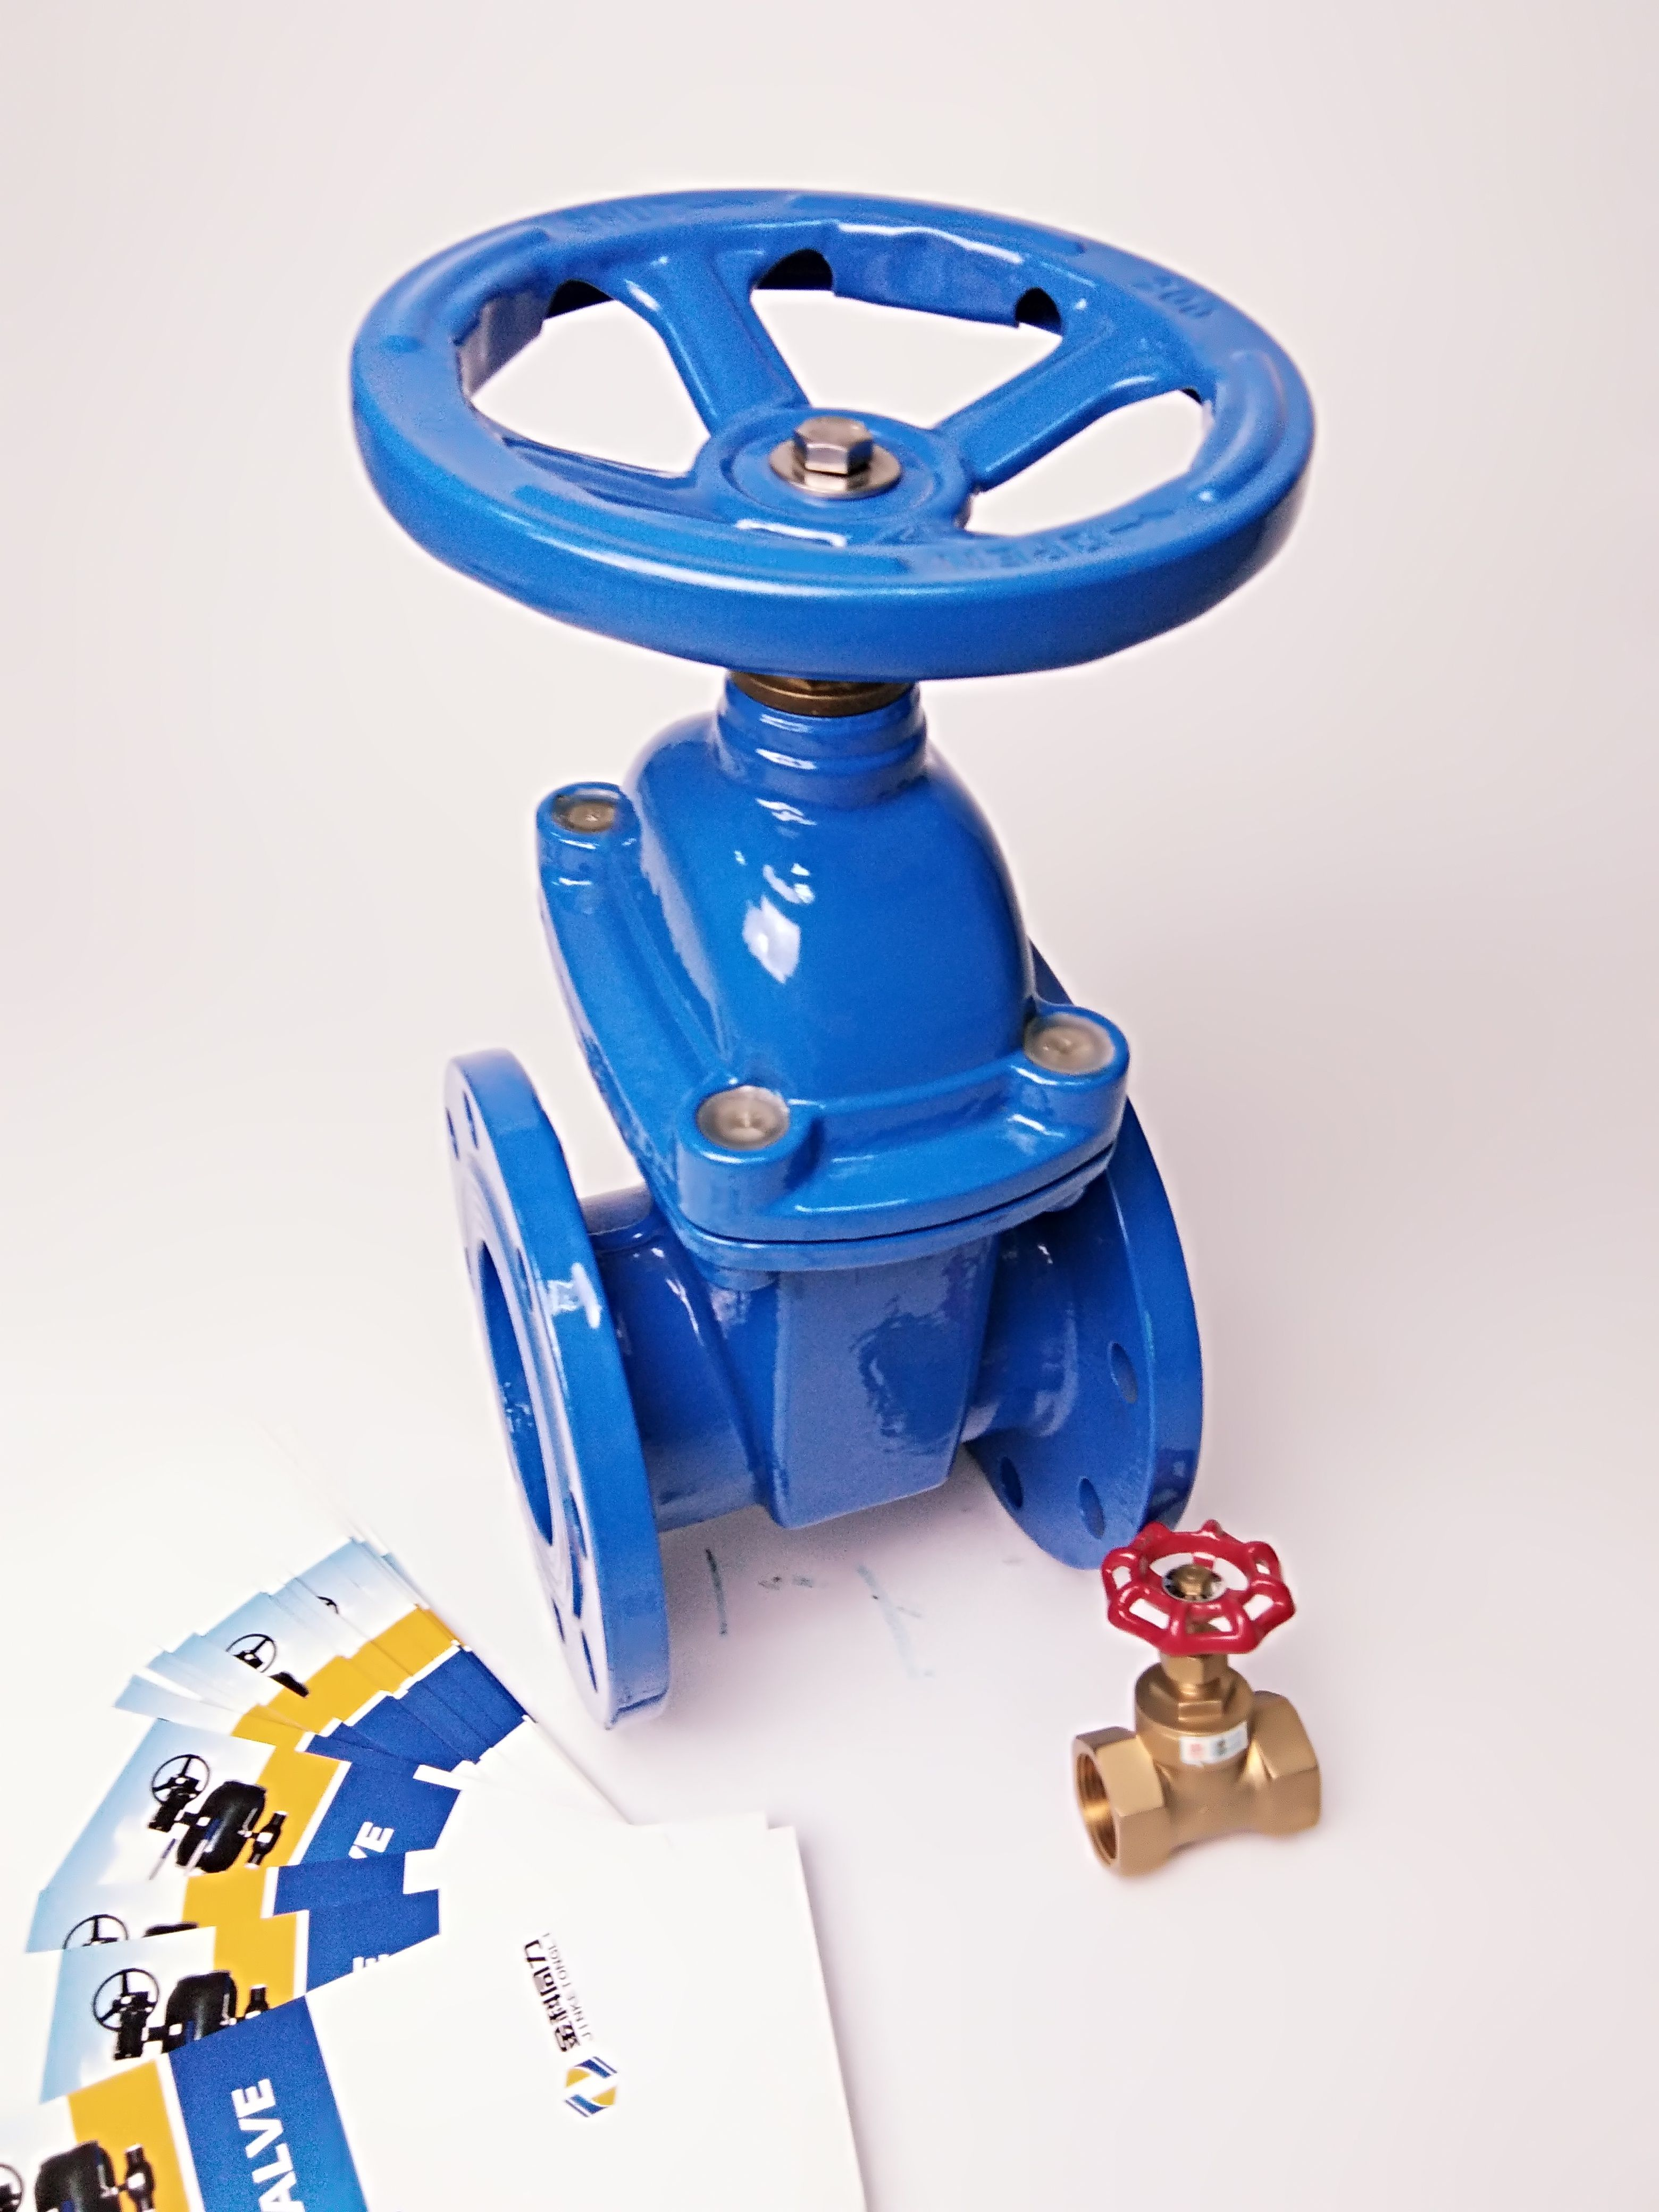 Gate valve produced by hebei tongli automatic control